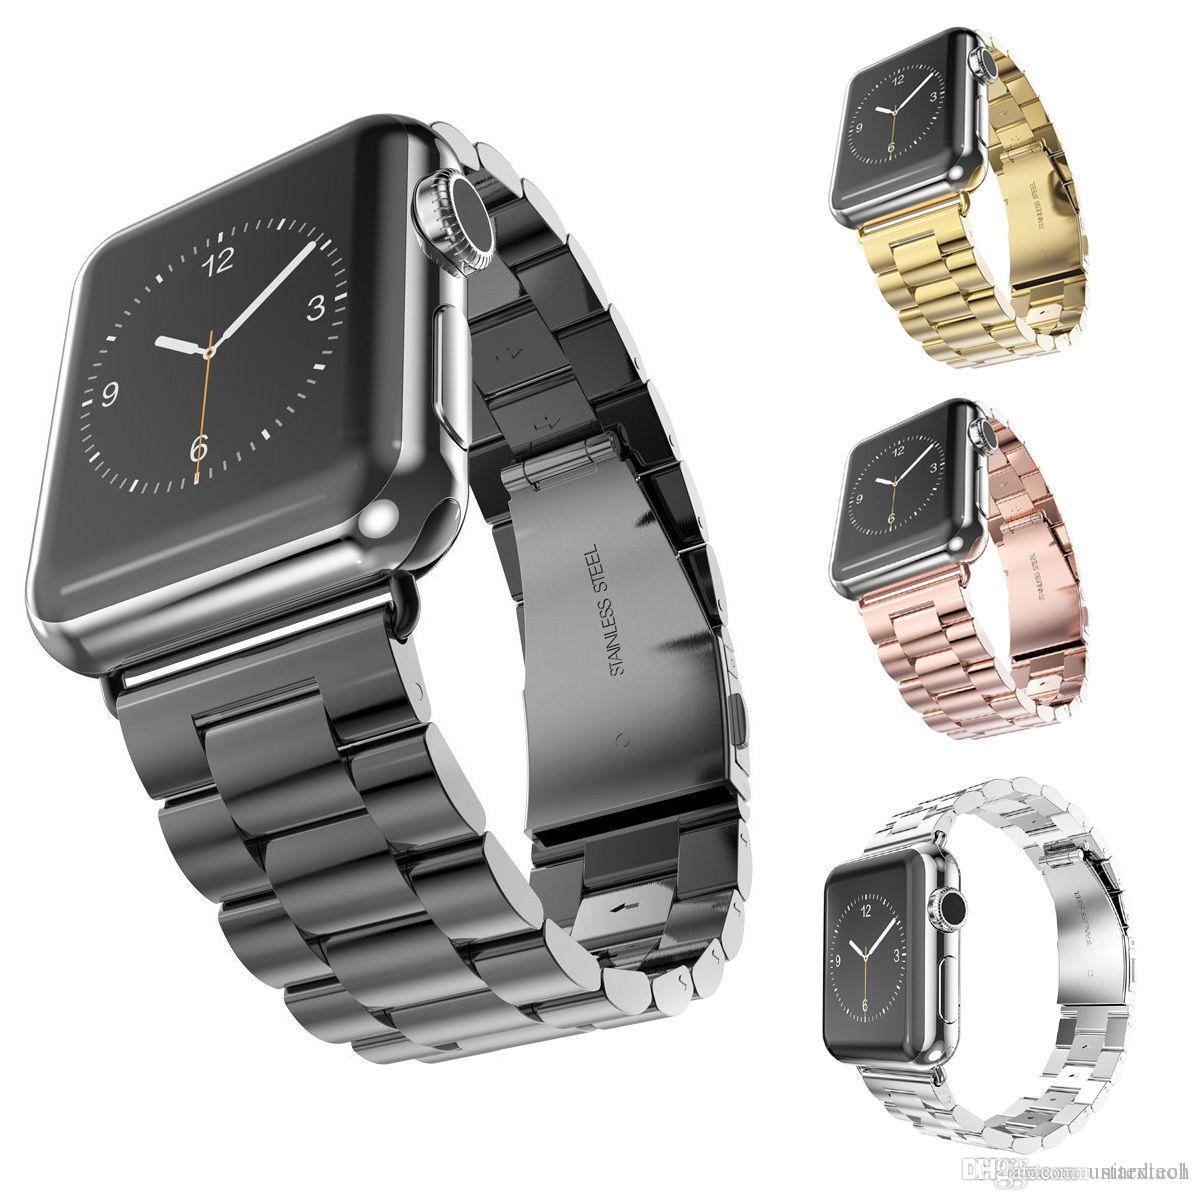 Stainless Steel Watch Band For iWatch Apple Watch Band 30mm 40mm 42mm 44mm Strap Link Bracelet Accessories series 4 3 2 1 Classical Lock